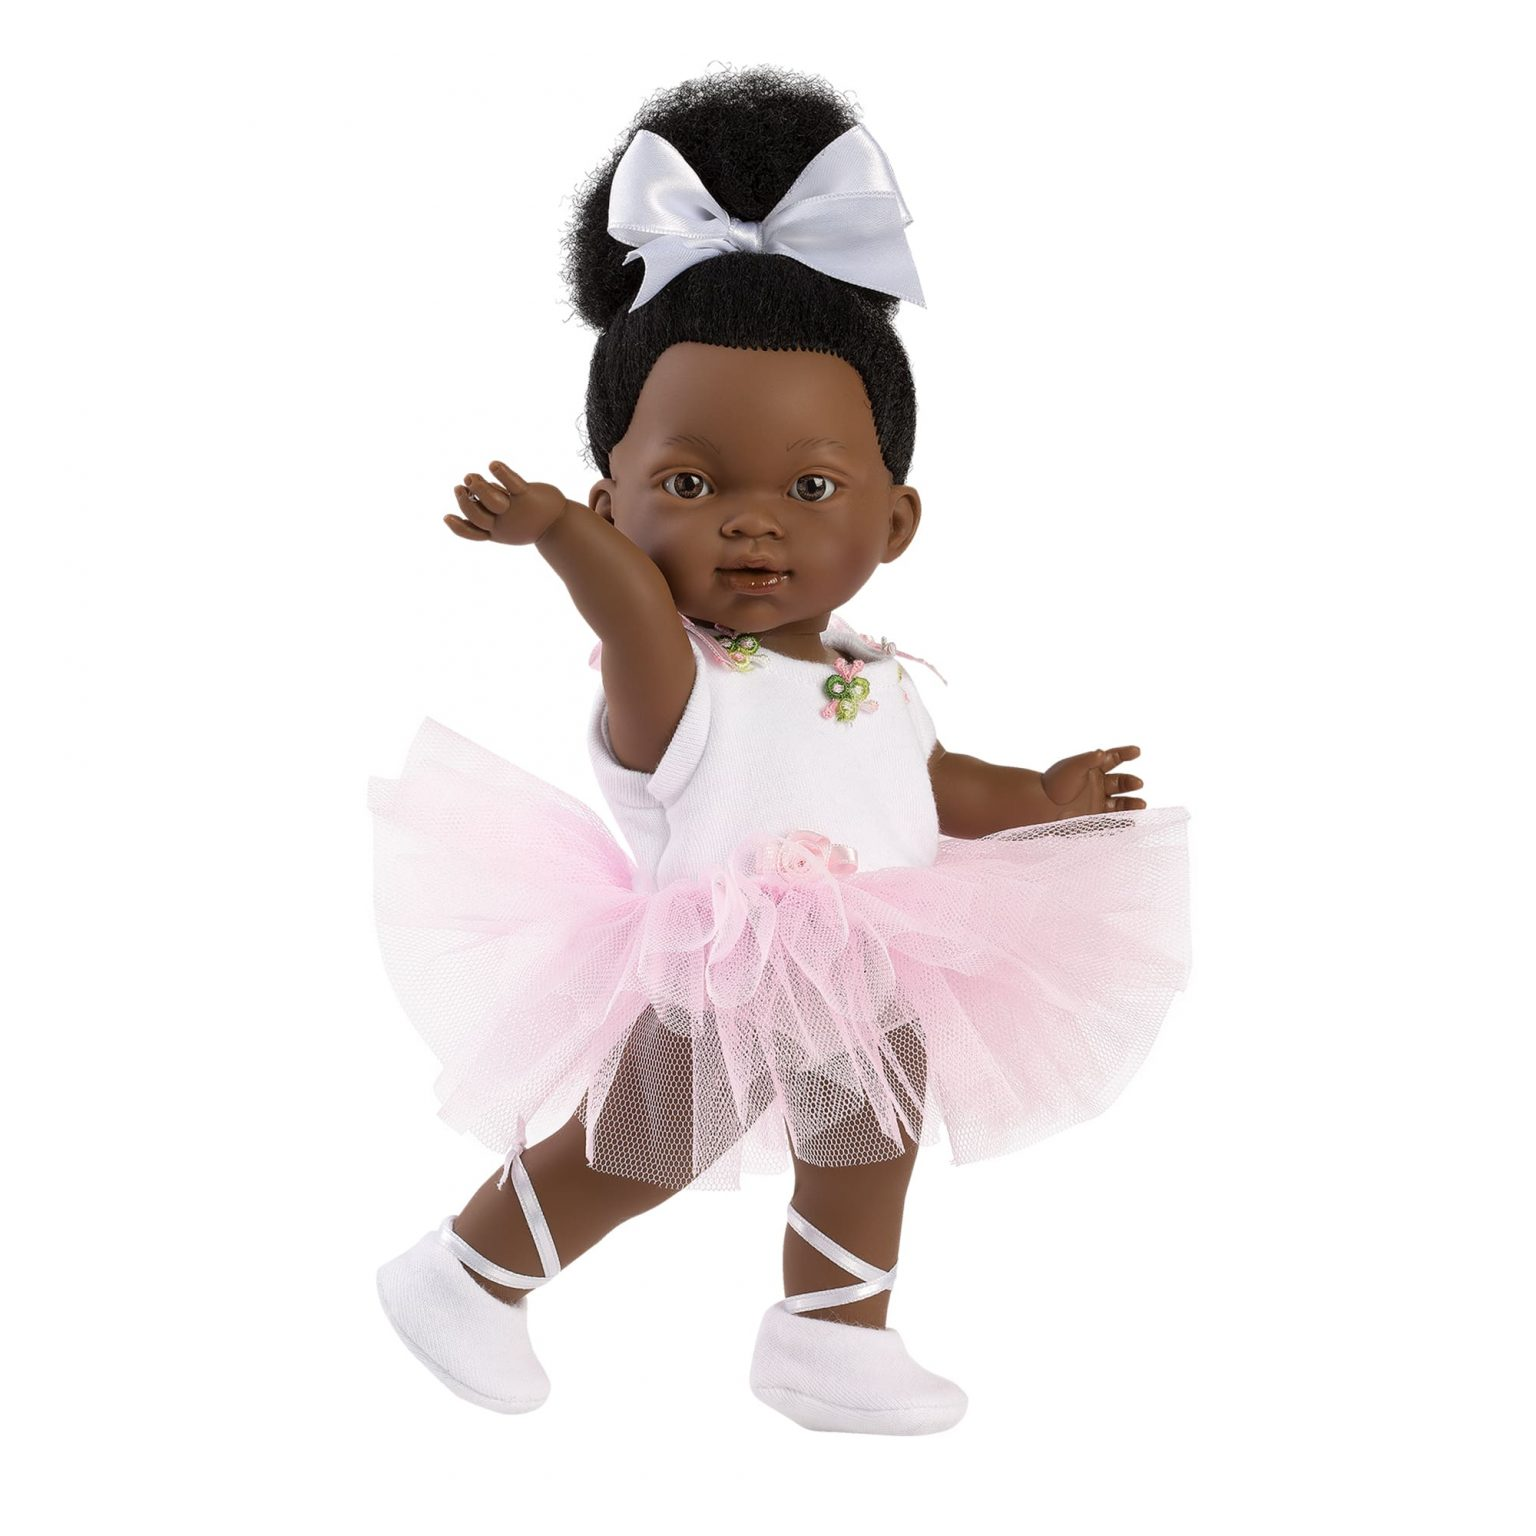 Isabella Llorens Girl Play Doll Mary Shortle